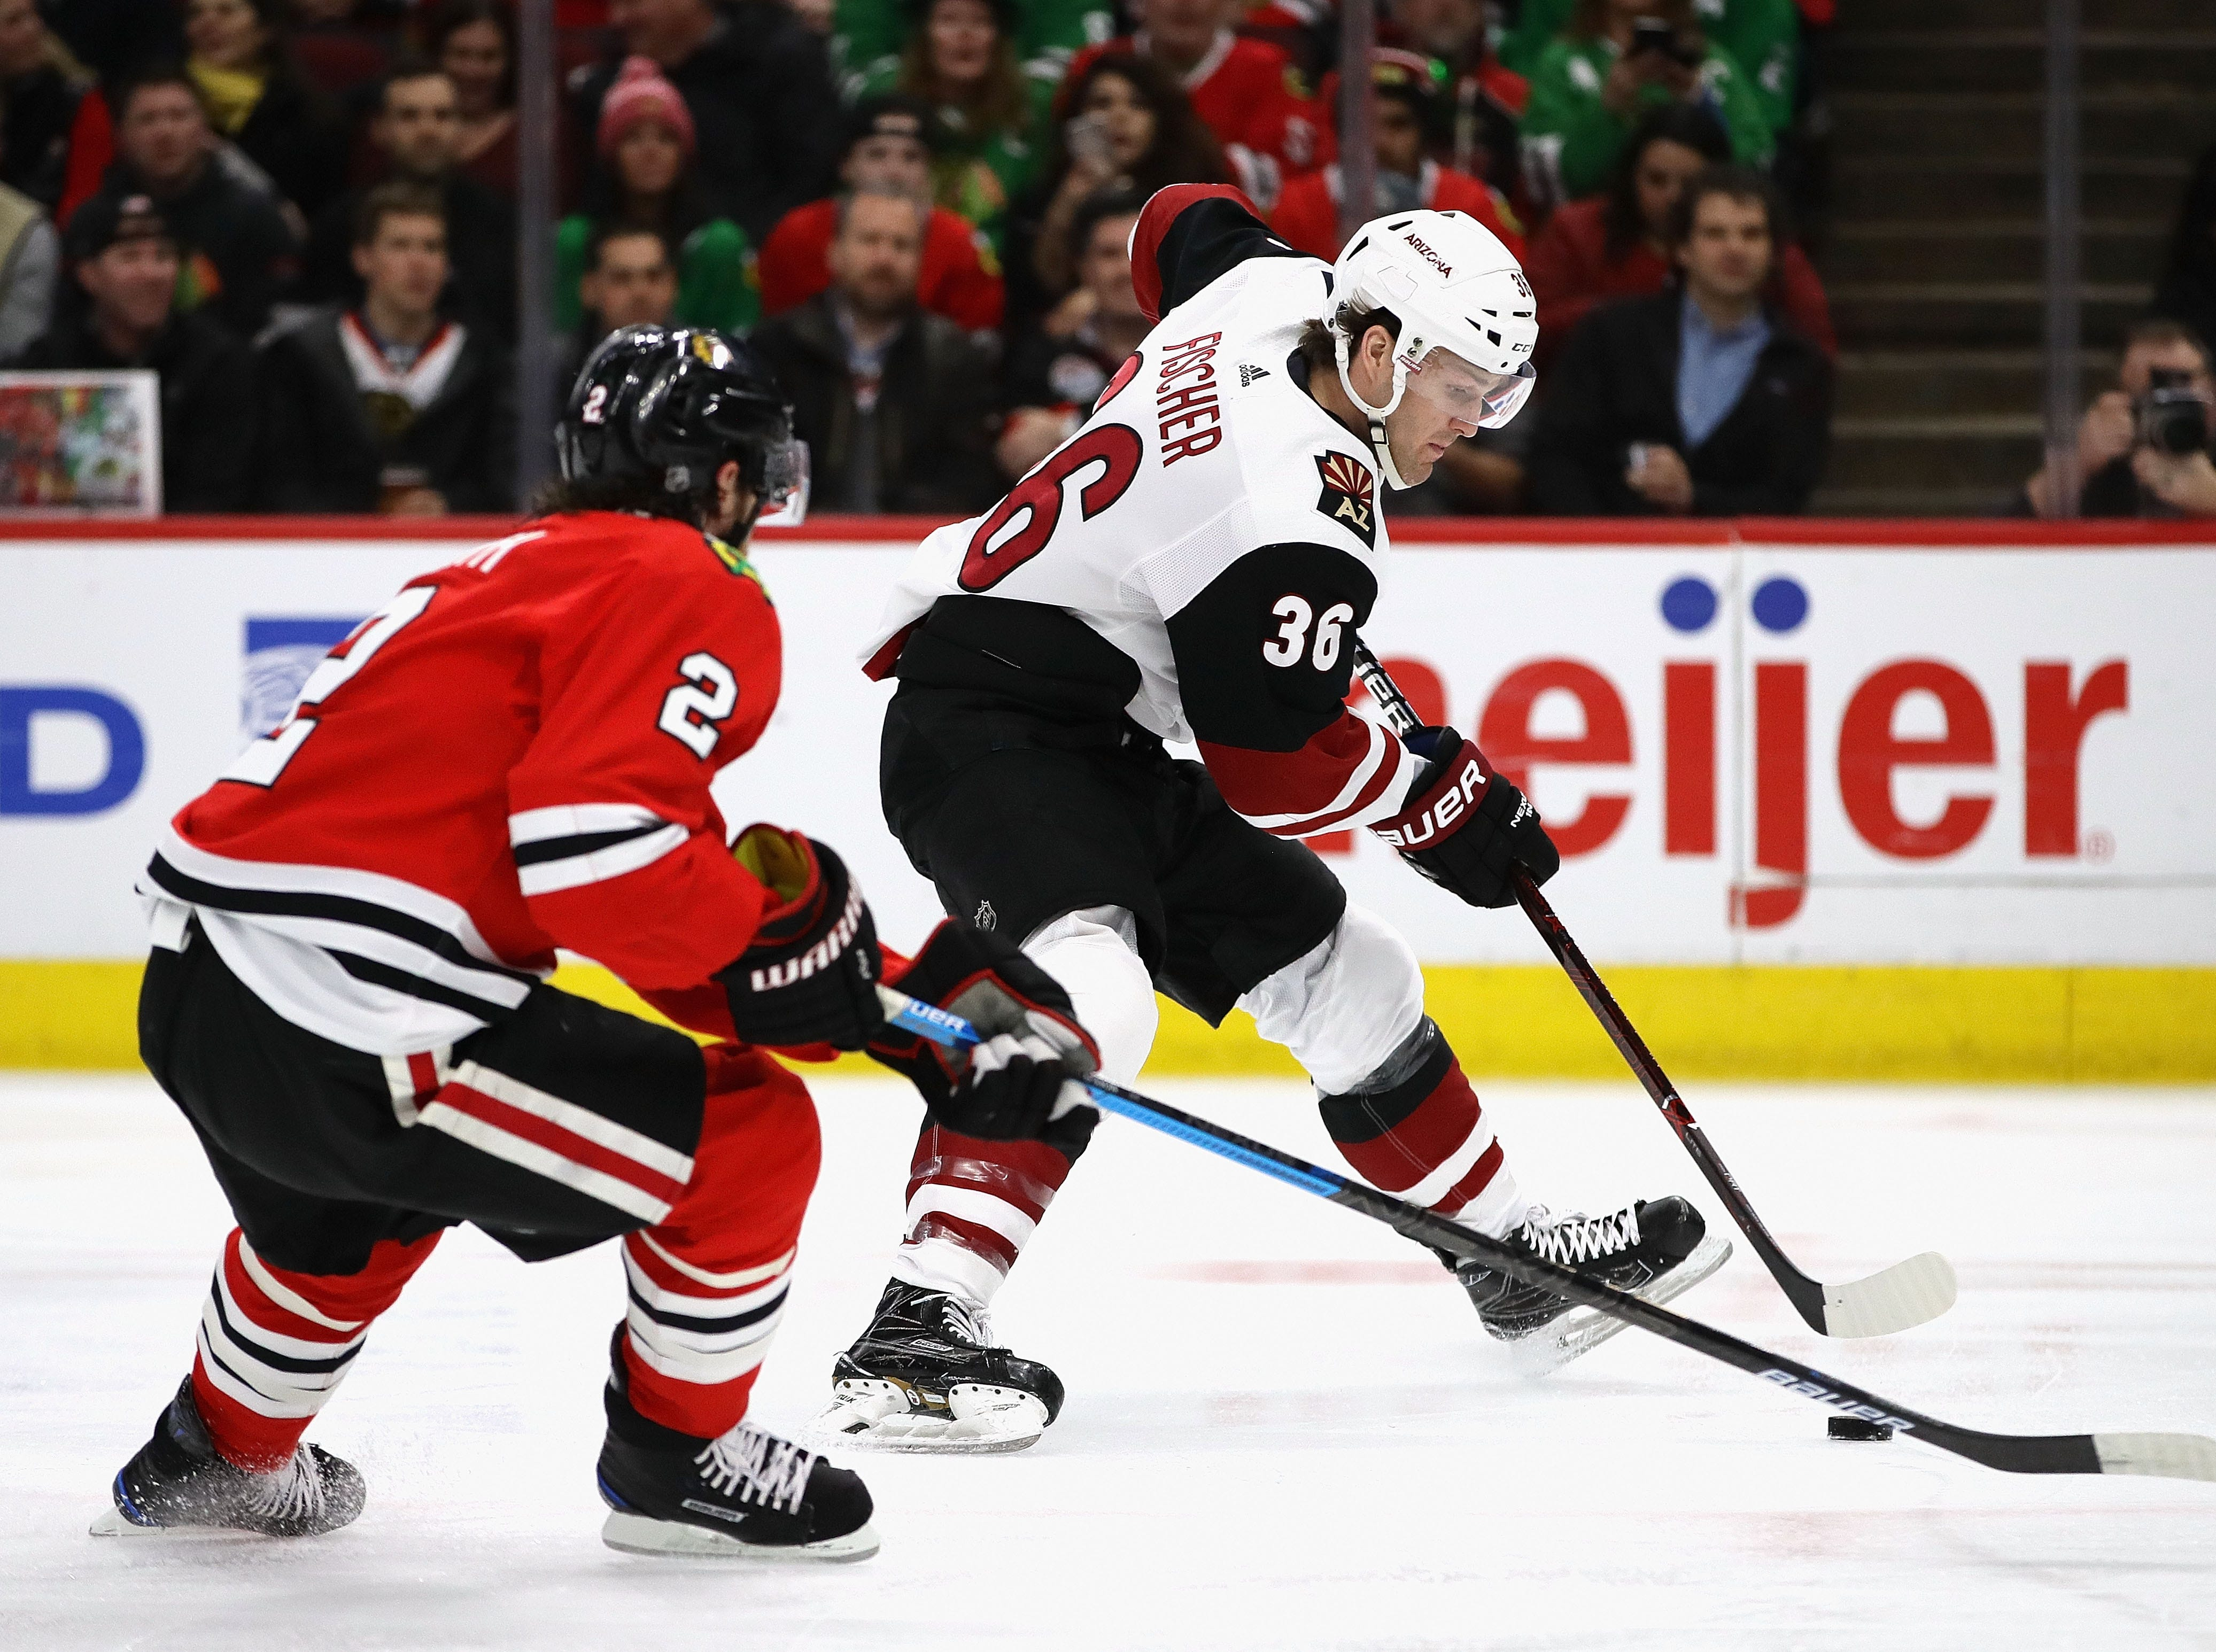 Christian Fischer works with the puck in front of Blackhawks defenseman Duncan Keith during a game March 11 at the United Center.